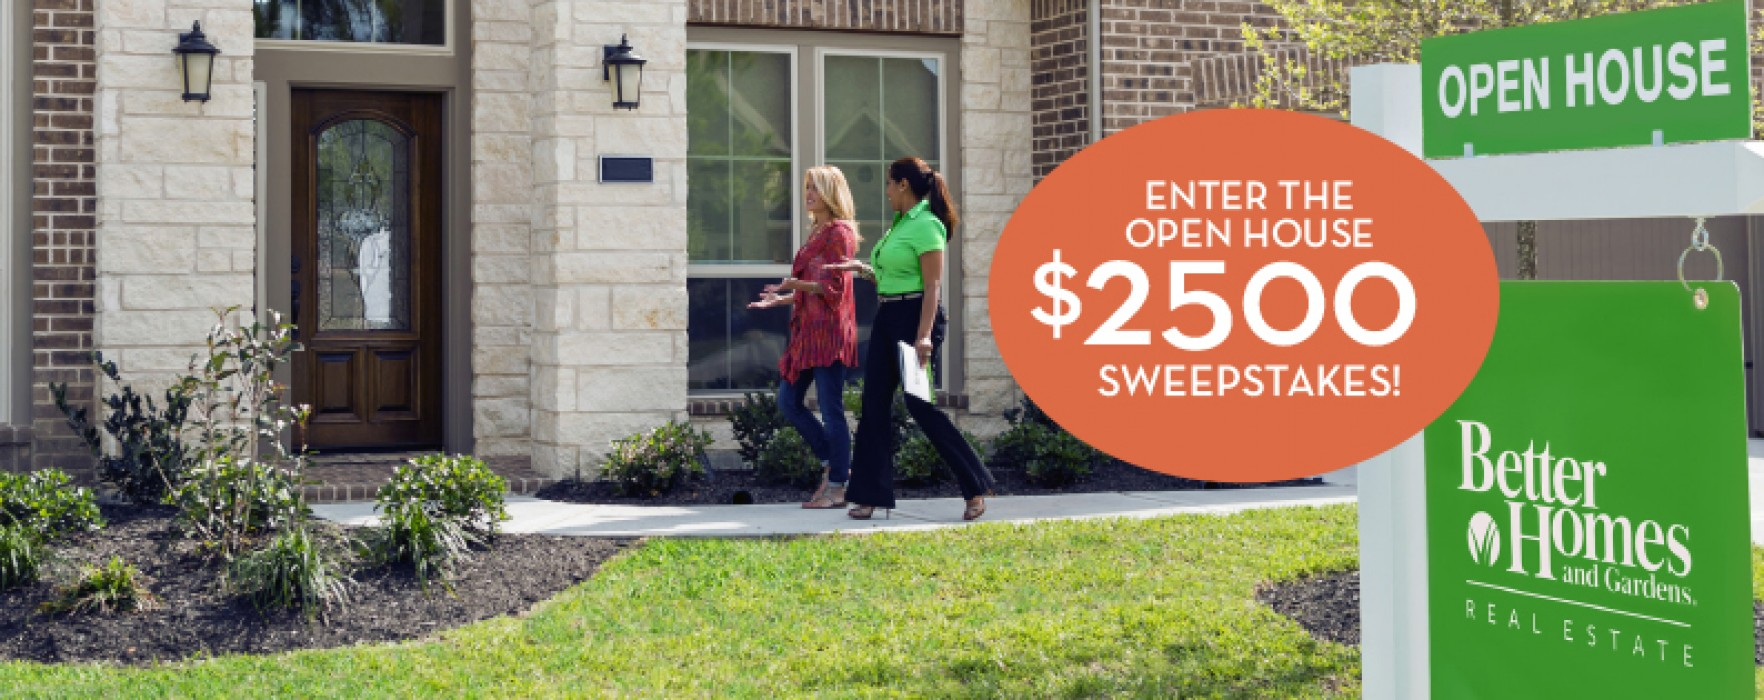 BHGRE Open House Sweepstakes 2015